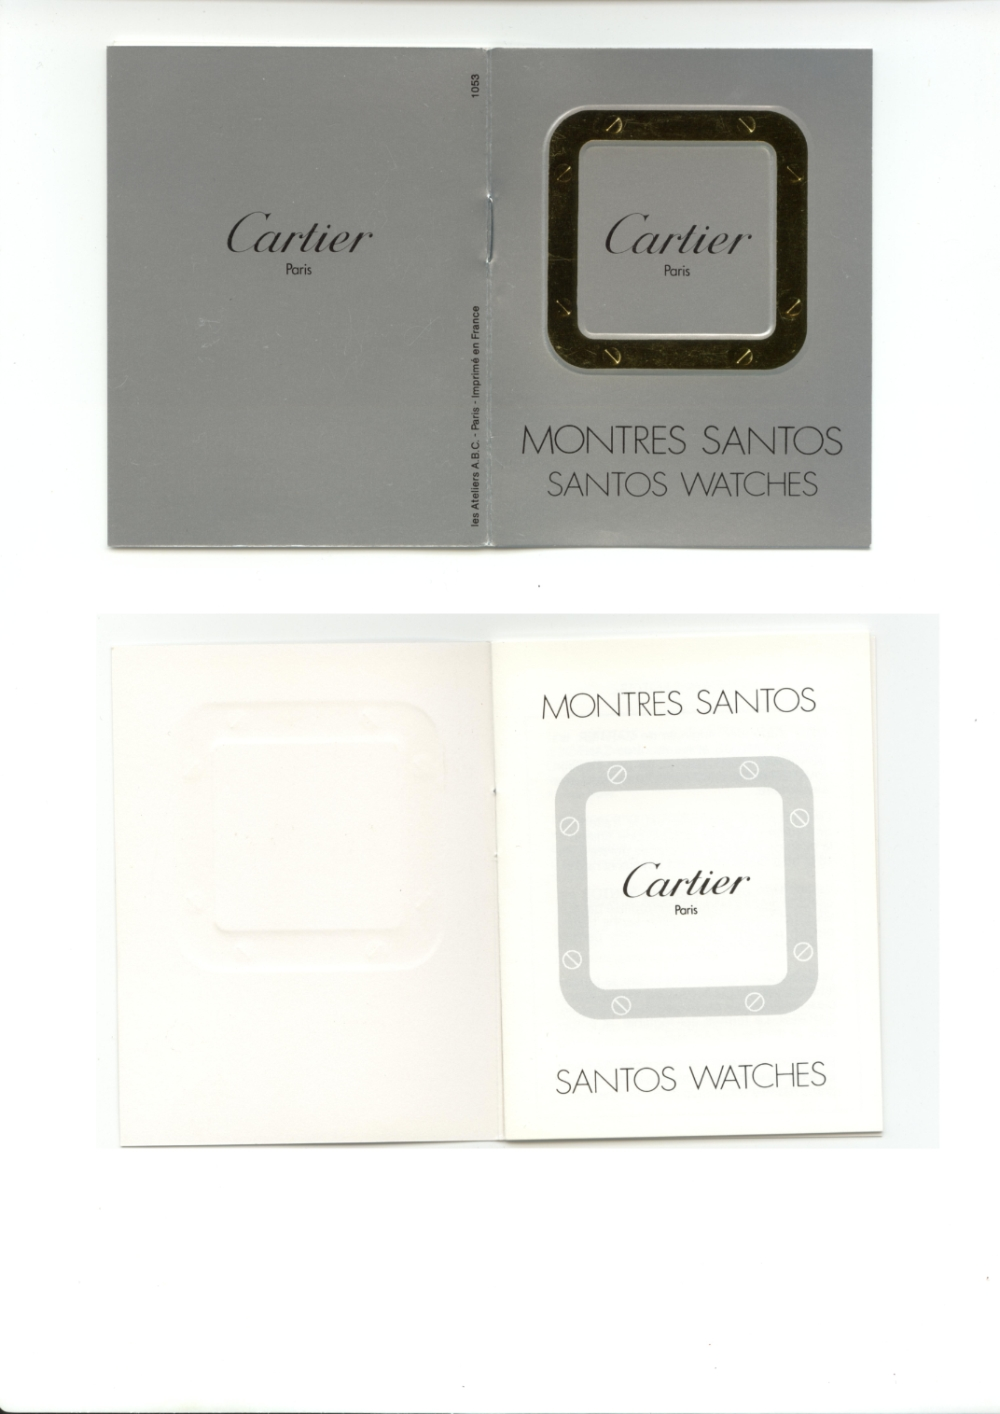 Notice CARTIER Santos watches